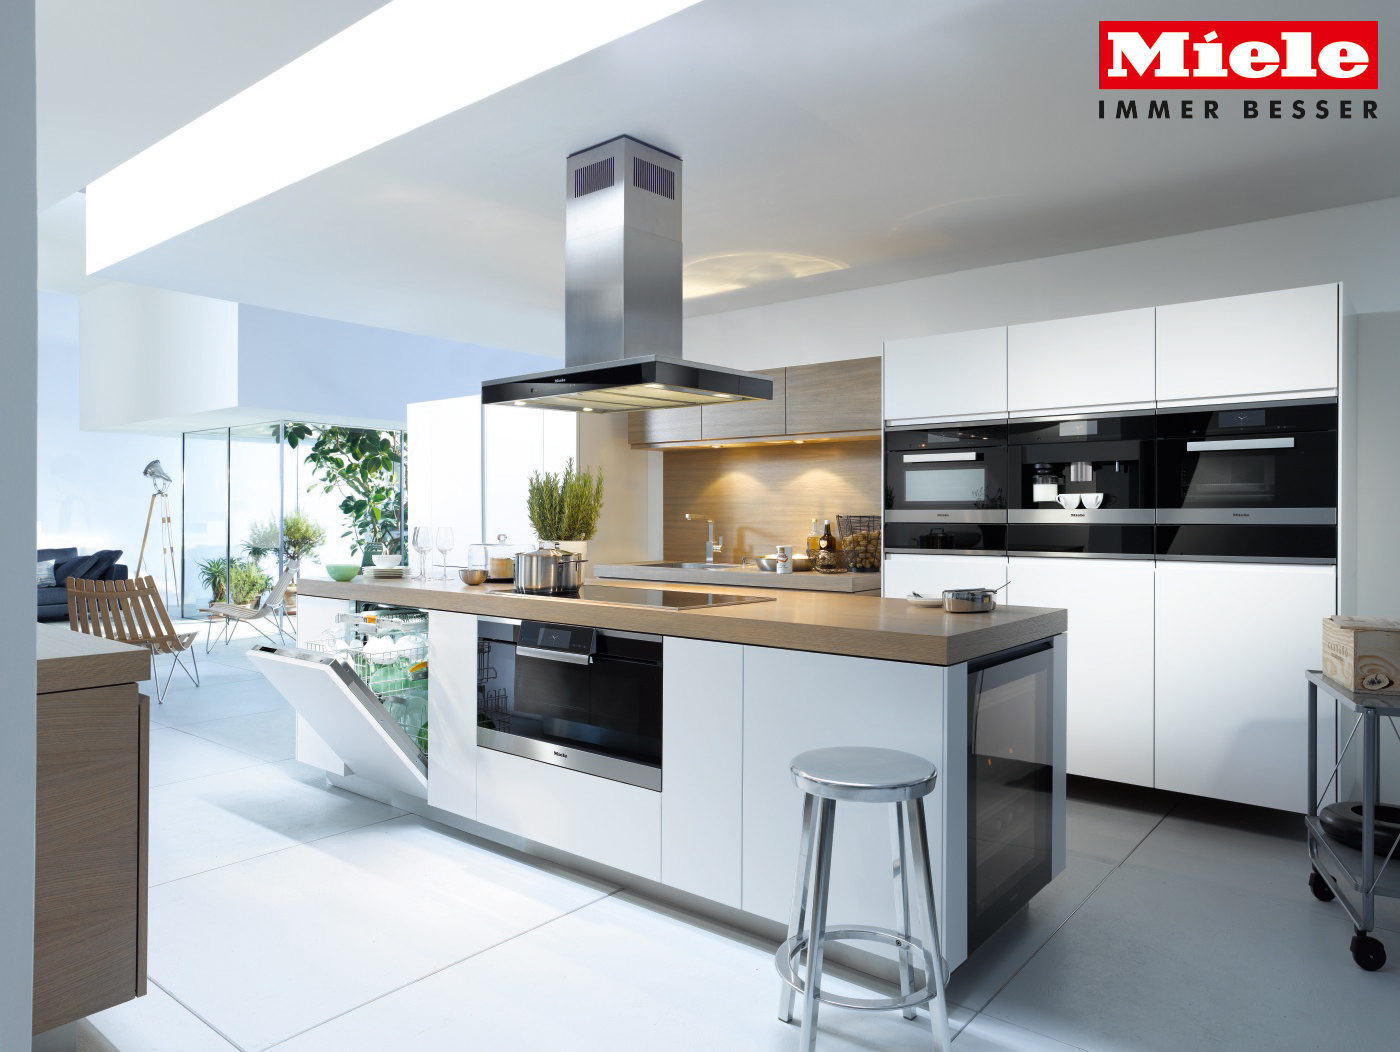 miele_kitchen_blog